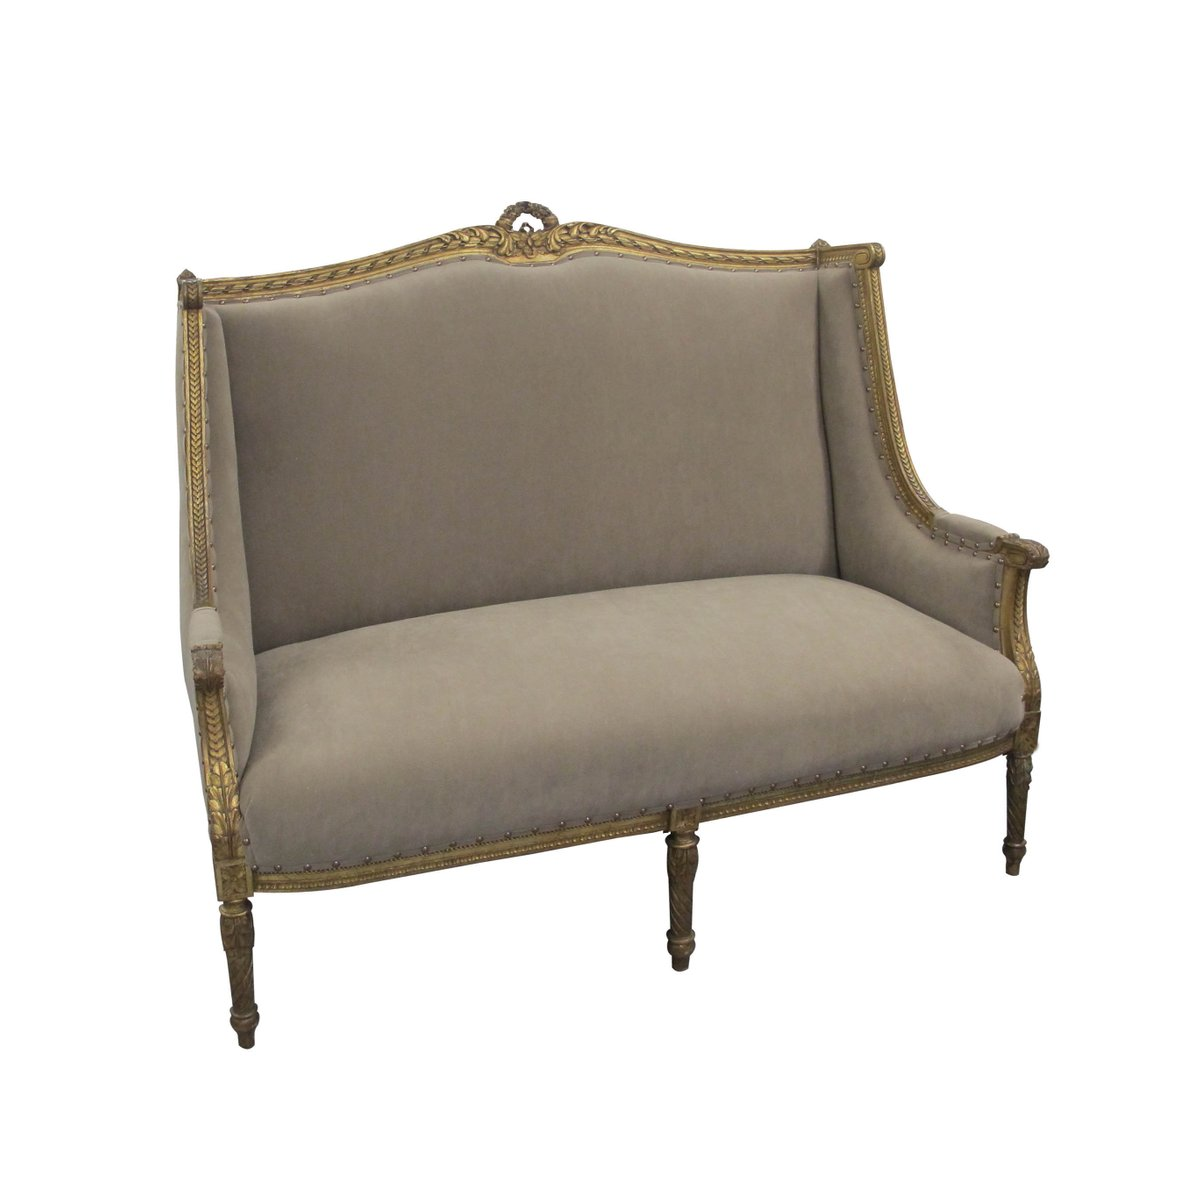 Antique French Marquise Sofa 7 3 602 00 Price Per Piece